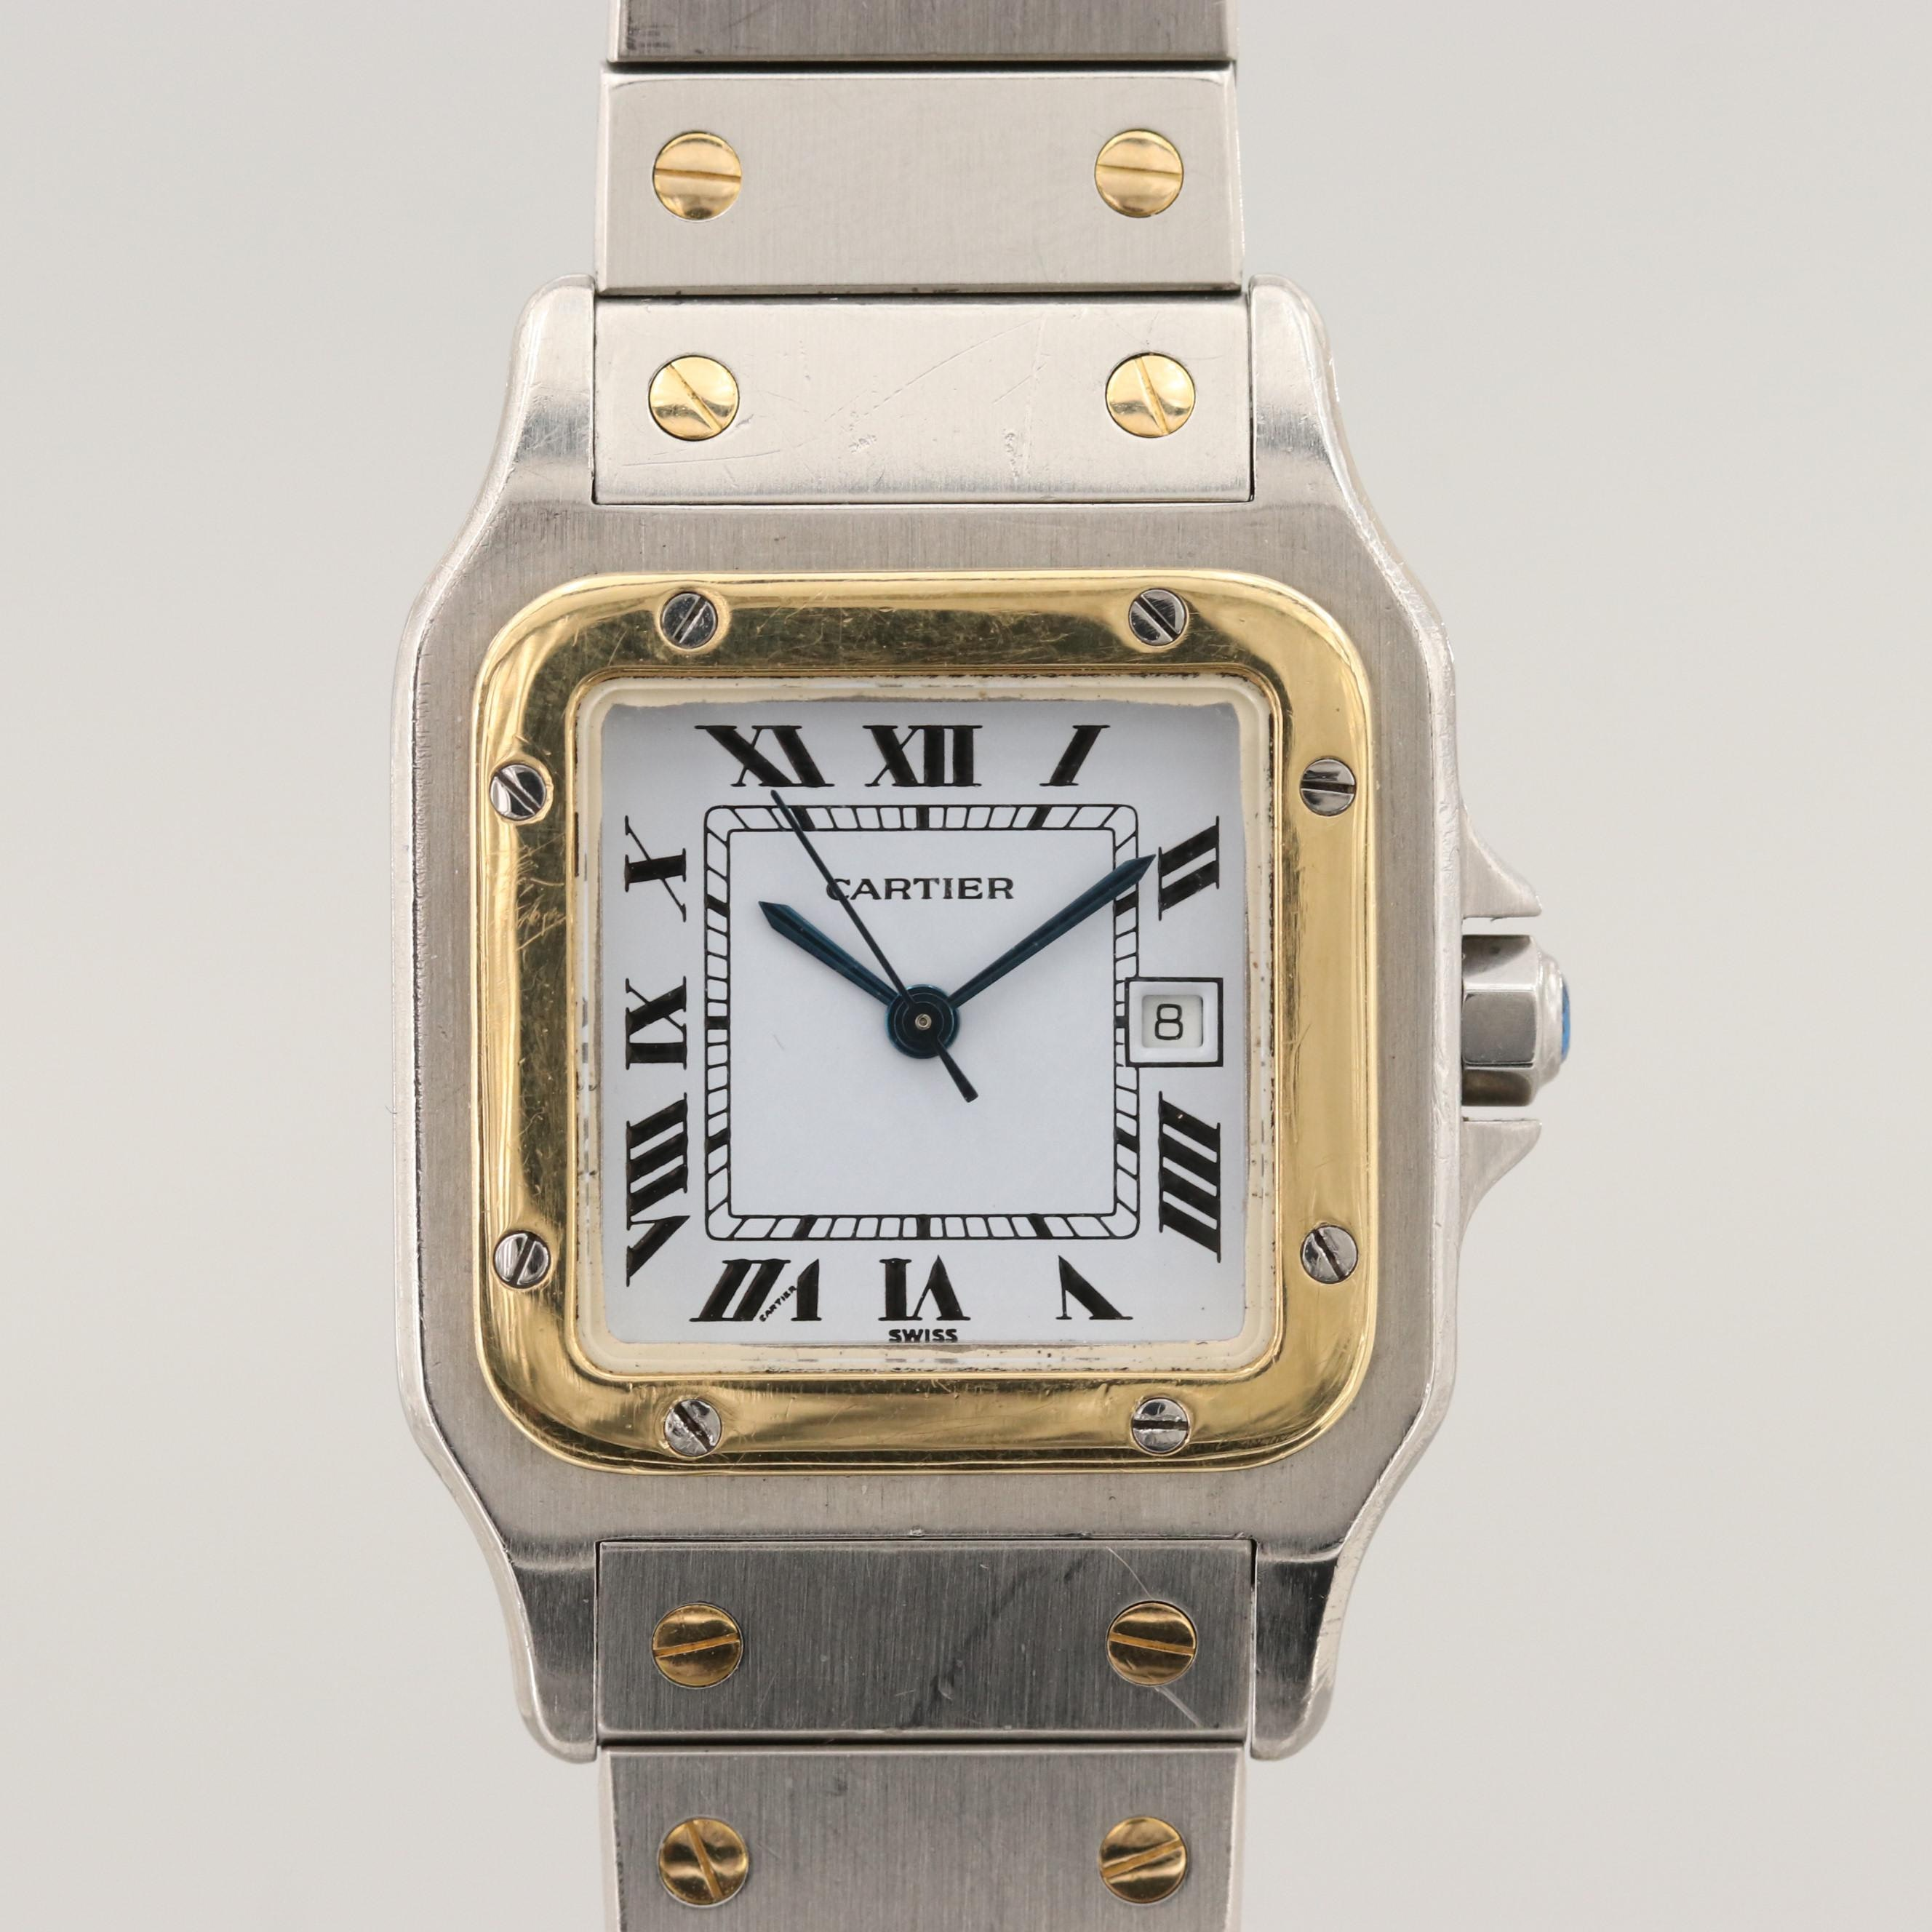 Cartier Santos Galbee 18K Yellow Gold and Stainless Steel Automatic Wristwatch